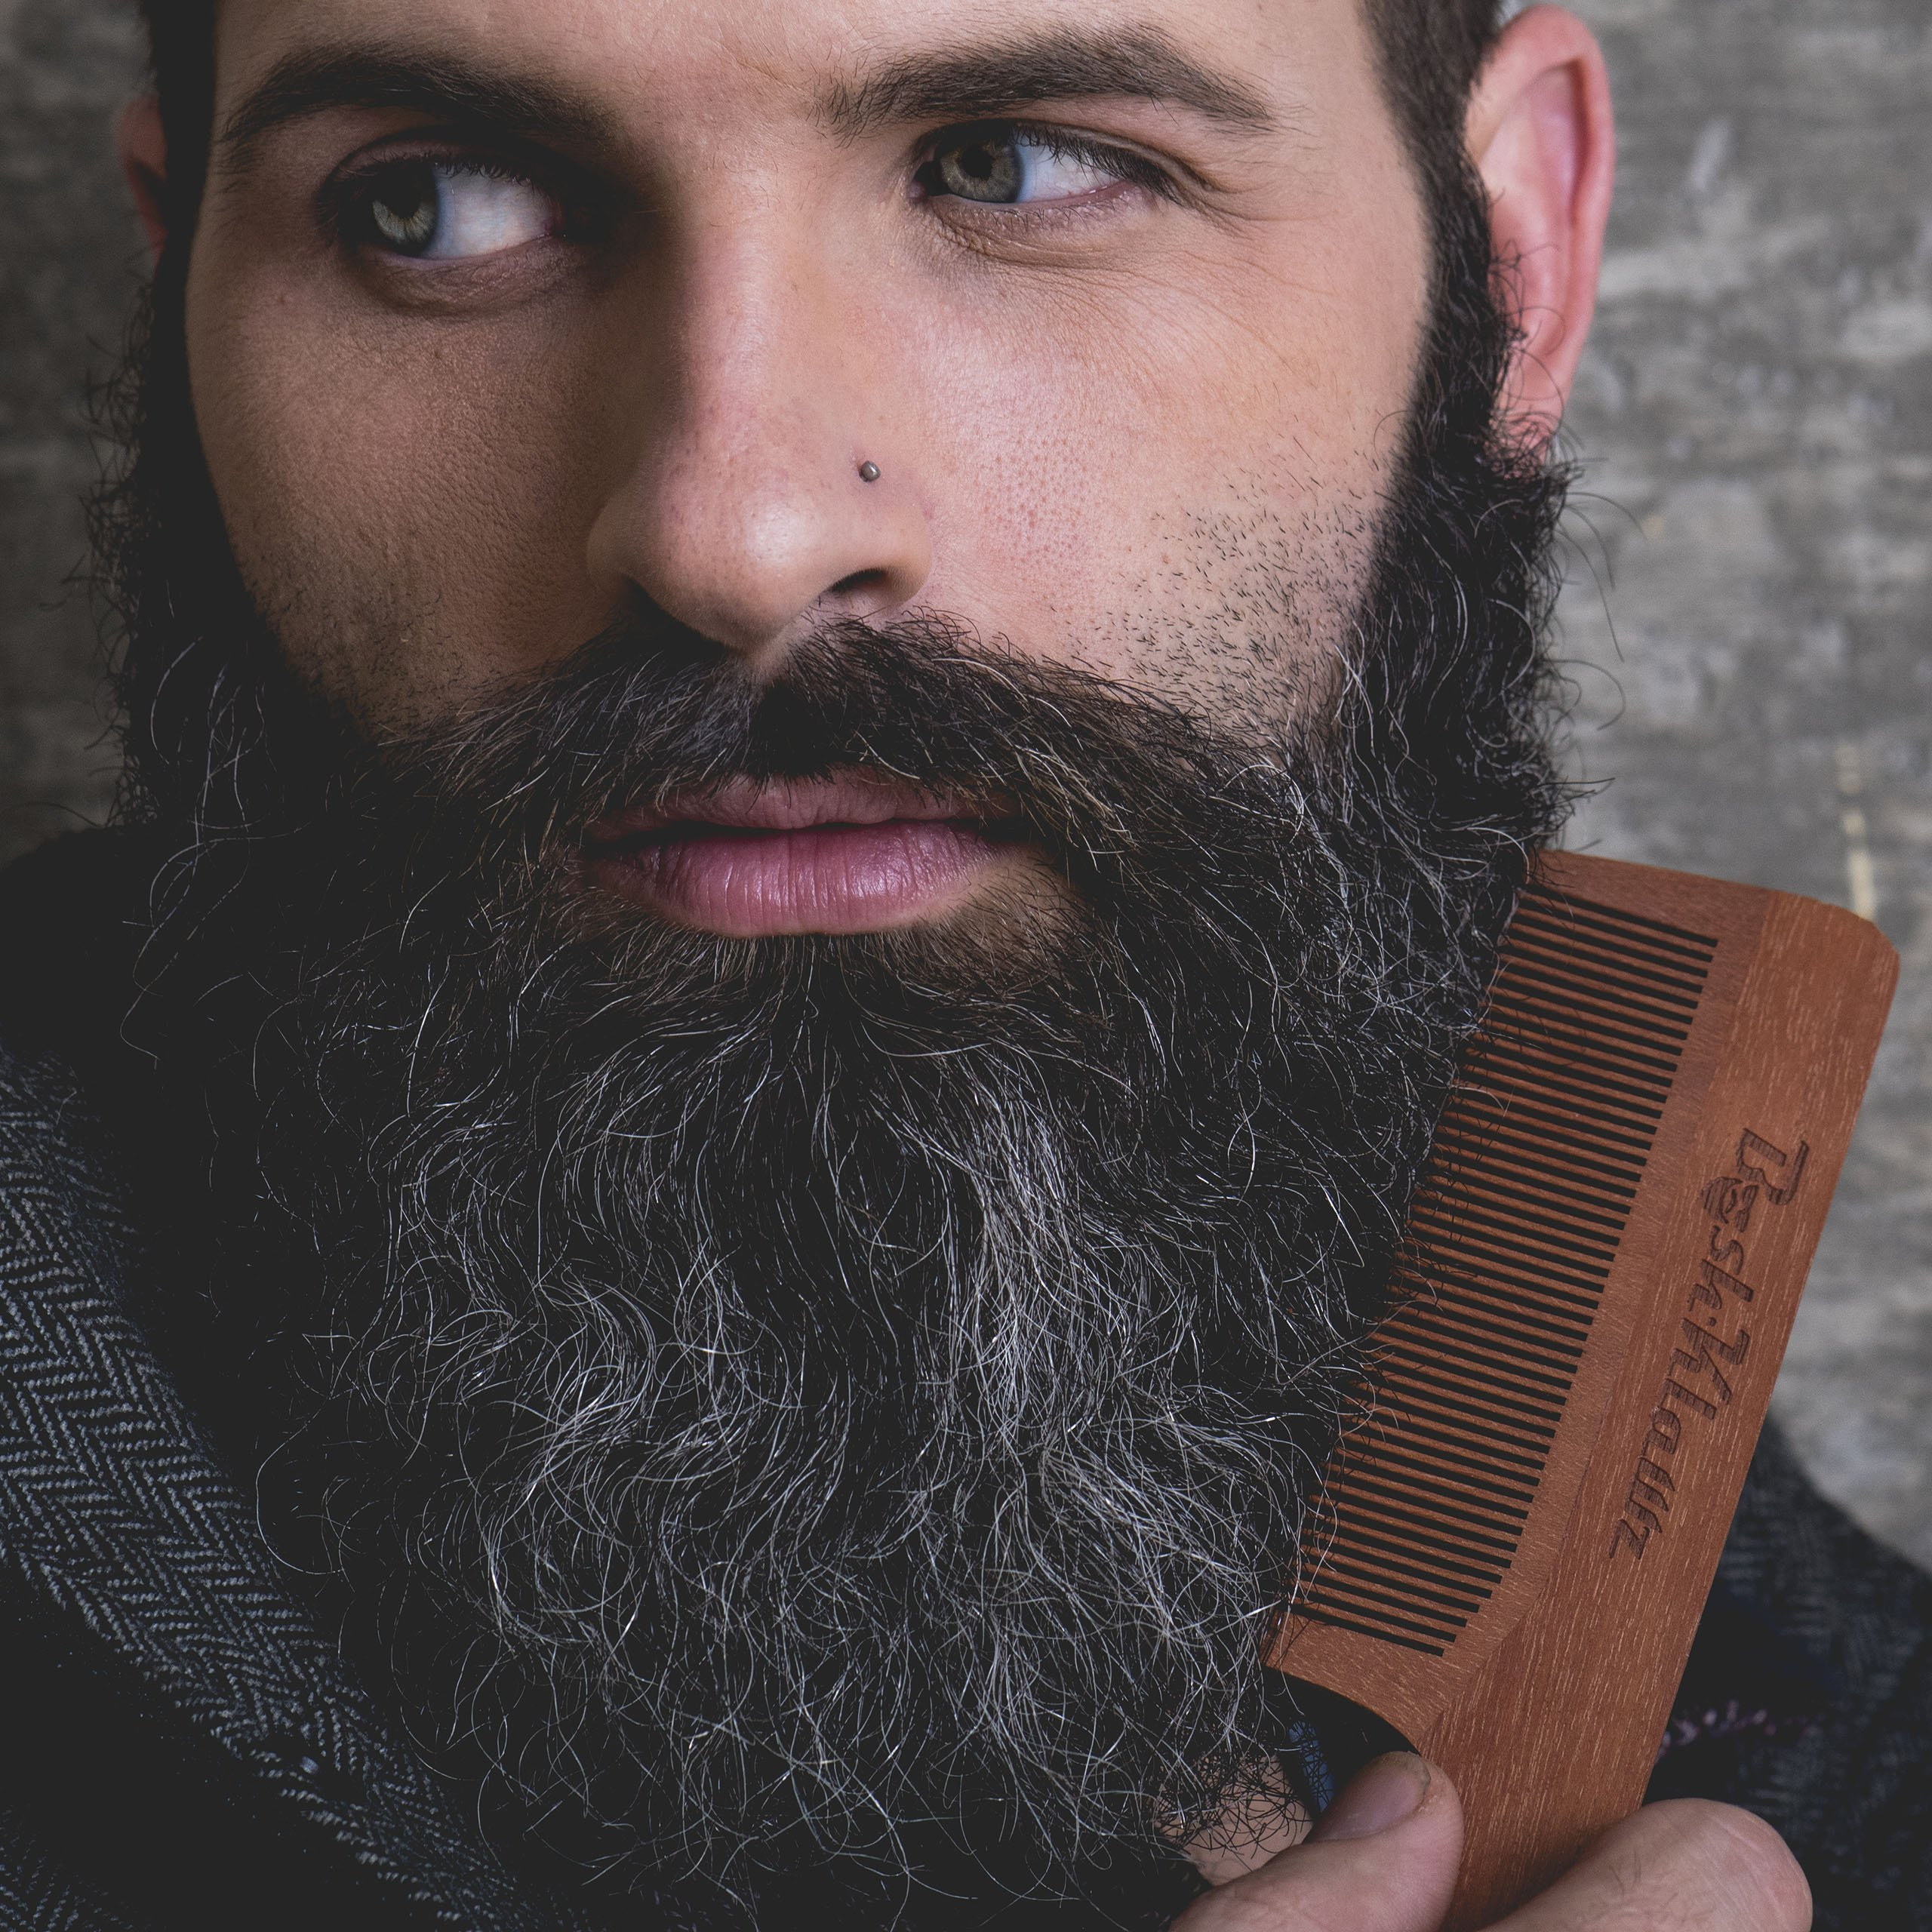 ManKlawz Men's Comb Fine Teeth Wooden Hair Comb Detailer for Fine Hair Parts and Styling - Best Handle Hair Comb for Men with Big Manly Hands by BushKlawz (Image #4)